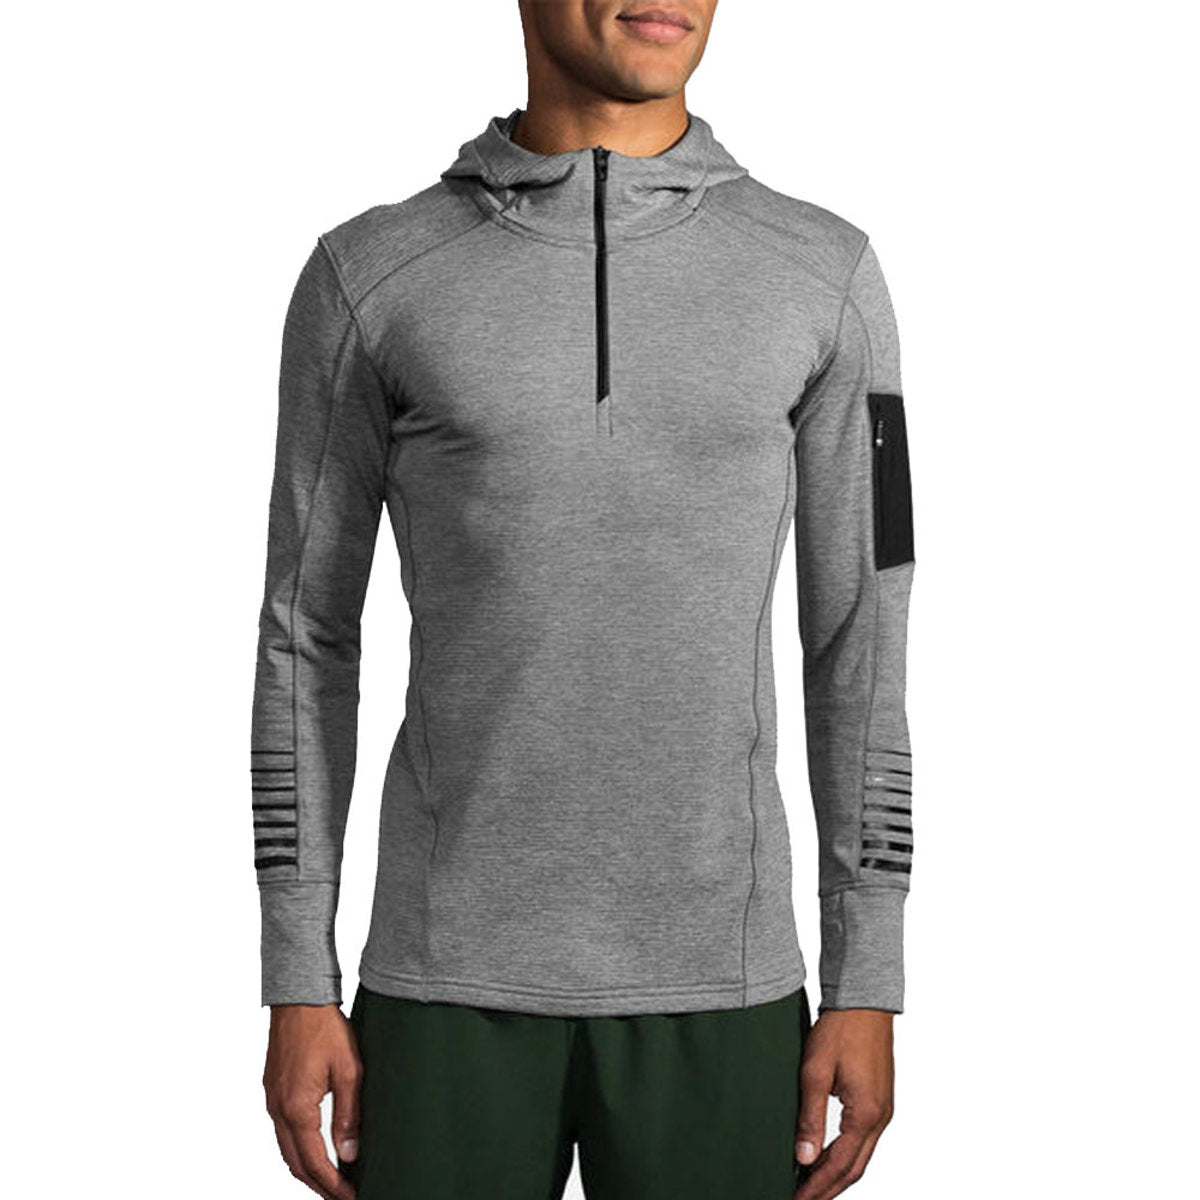 Notch Thermal Hoodie (M) - Heather Sterling